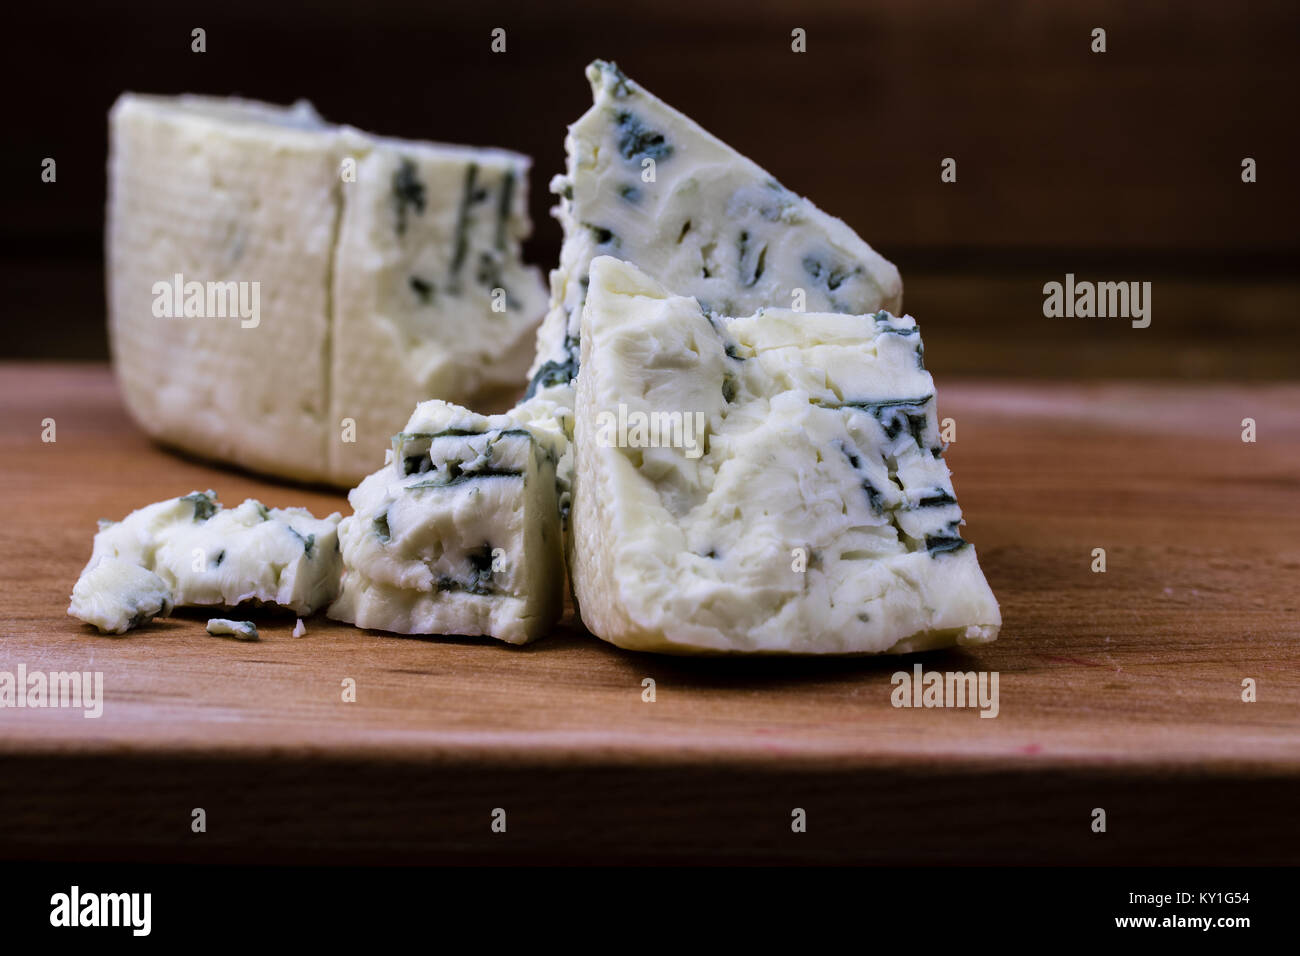 Danish blue or roquefort cheese macro shot on the cutting board with coarse edges and moldy veins exposed. - Stock Image